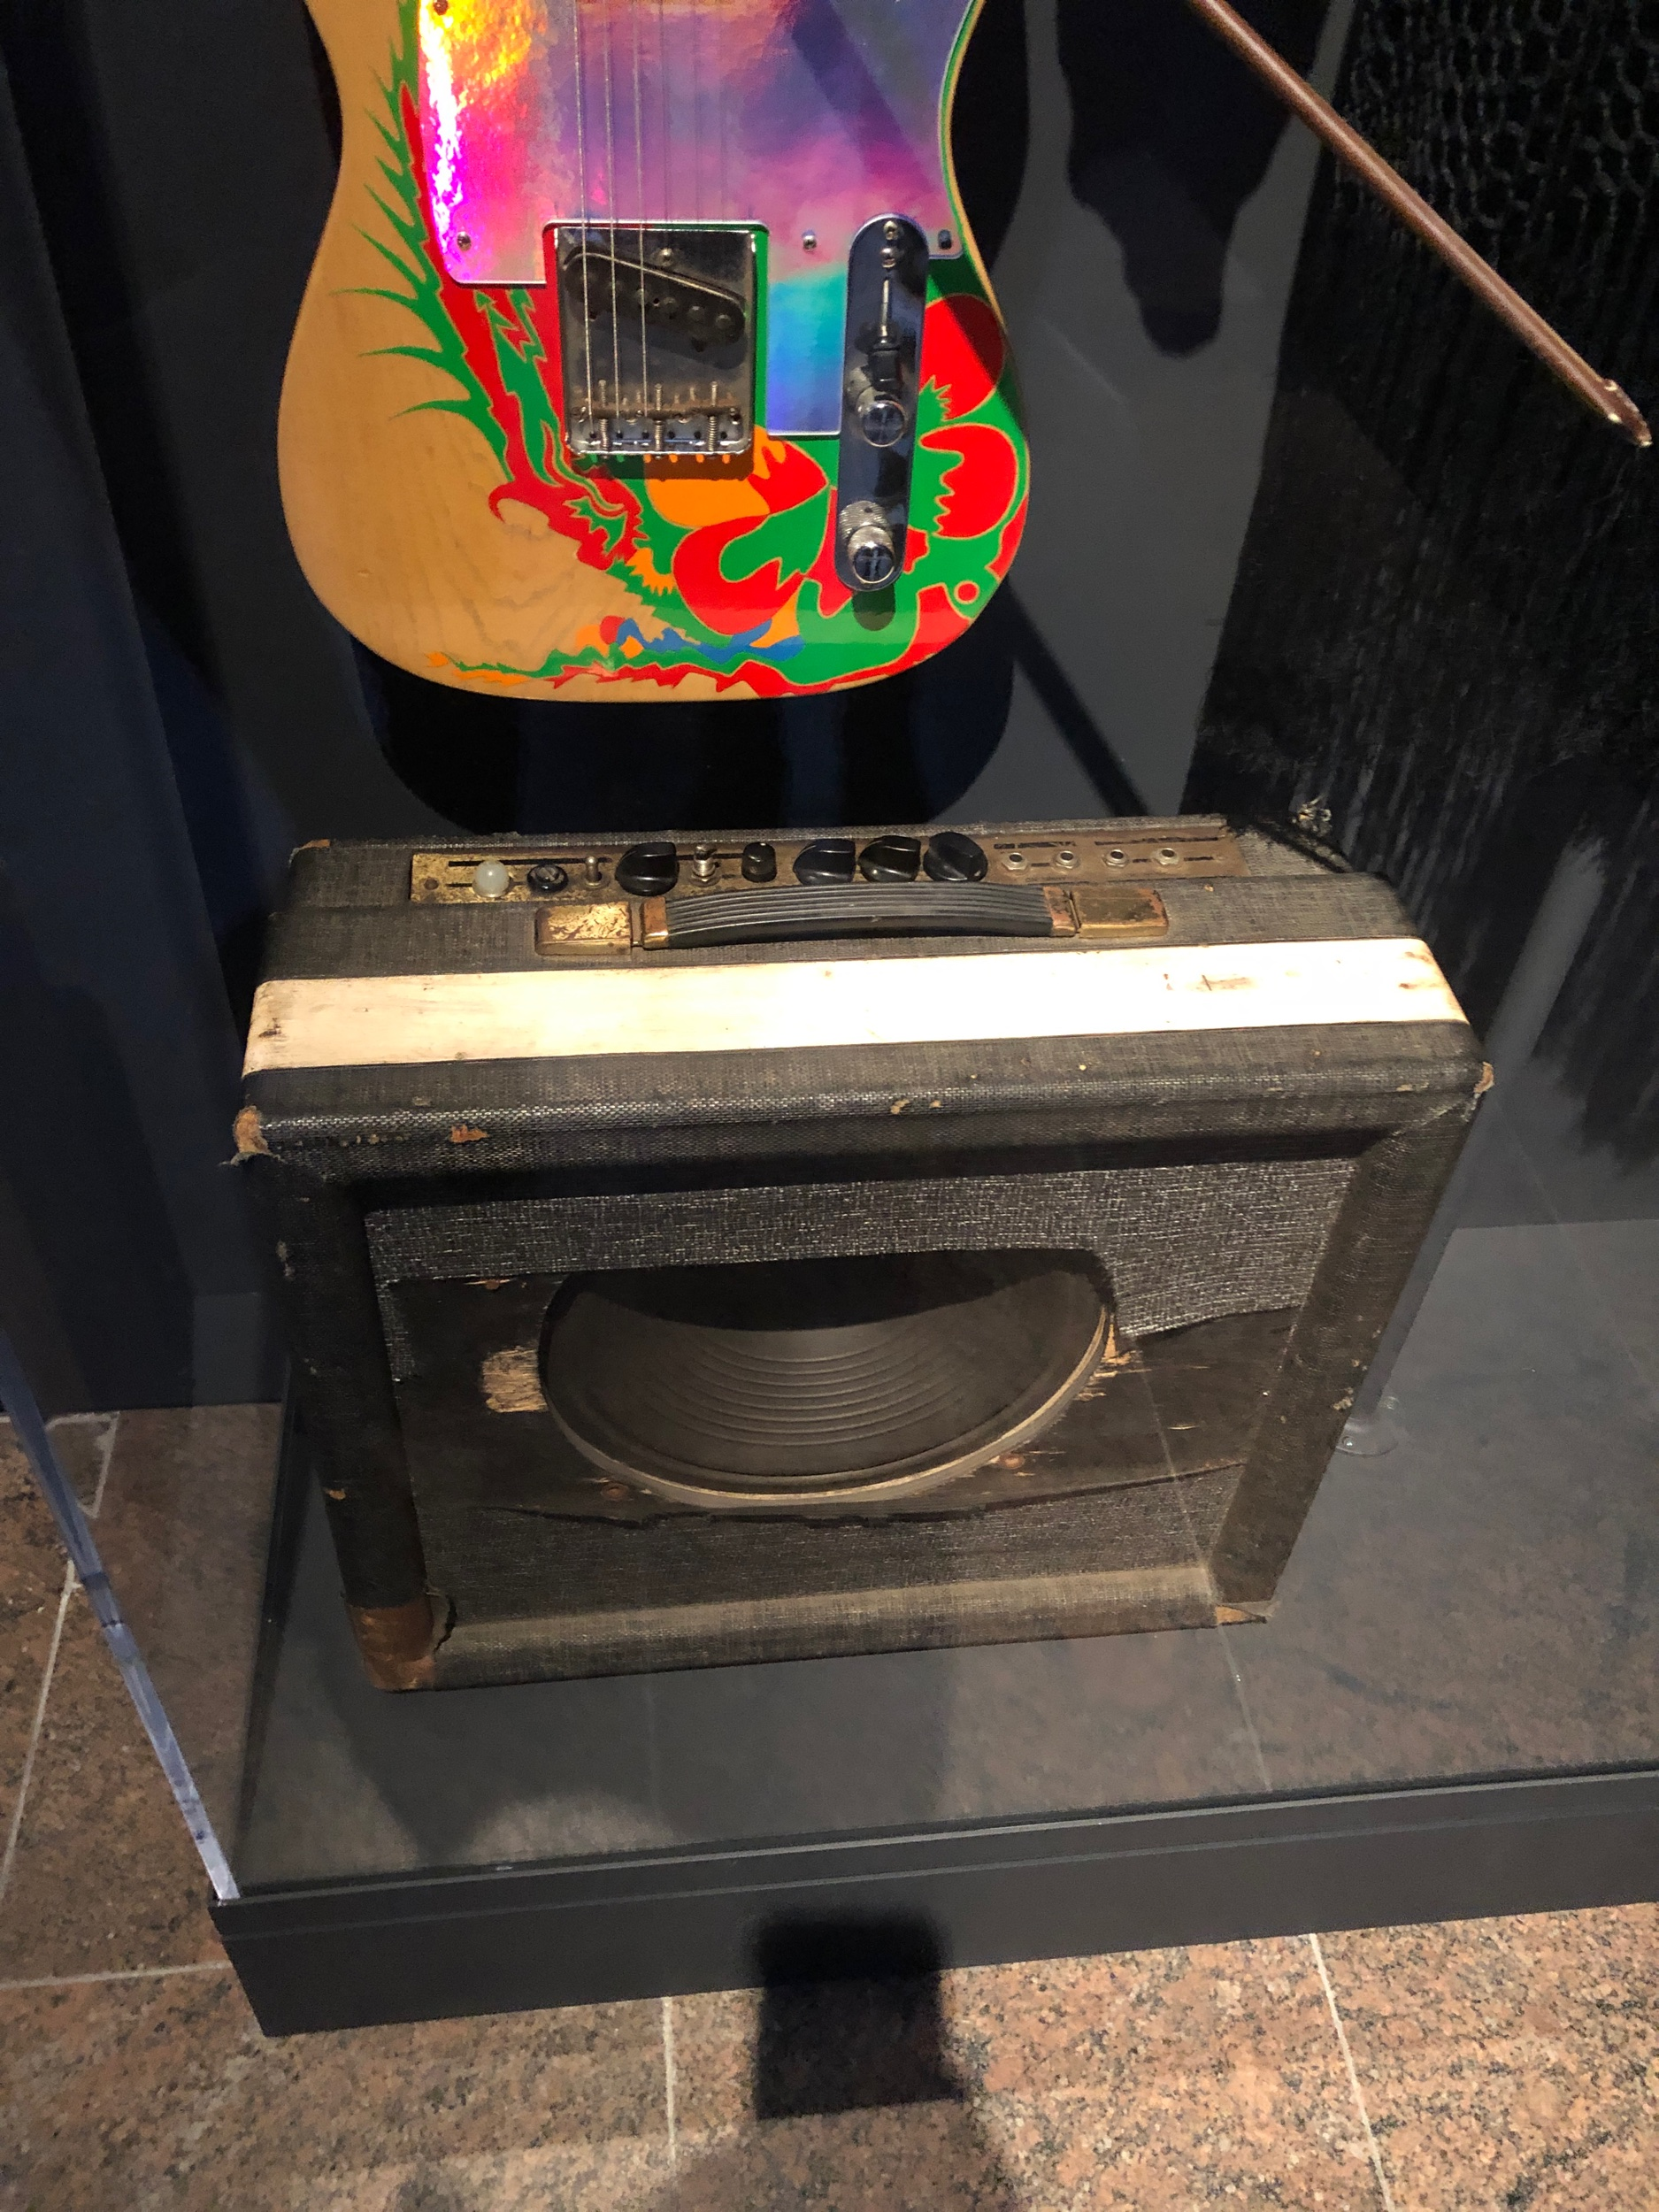 Jimmy Pages amp and guitar from Led Zeppelin I